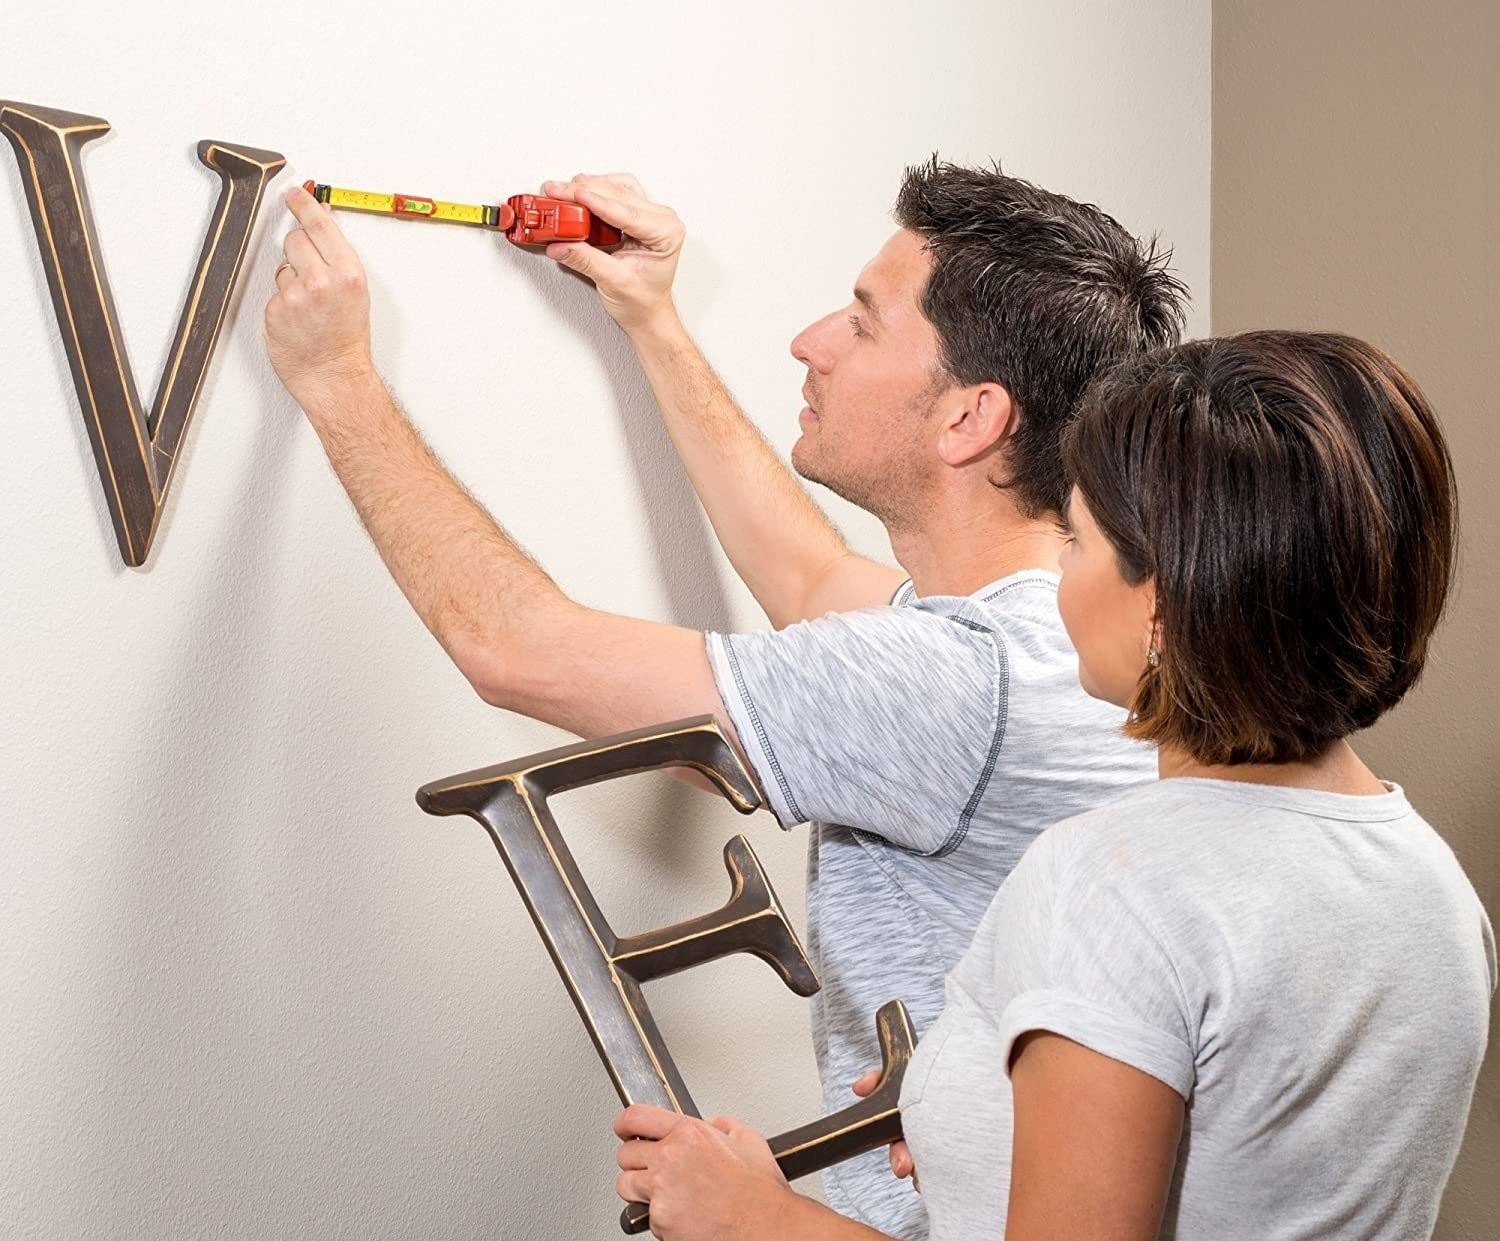 A couple of people using the tool to hang some wall decor